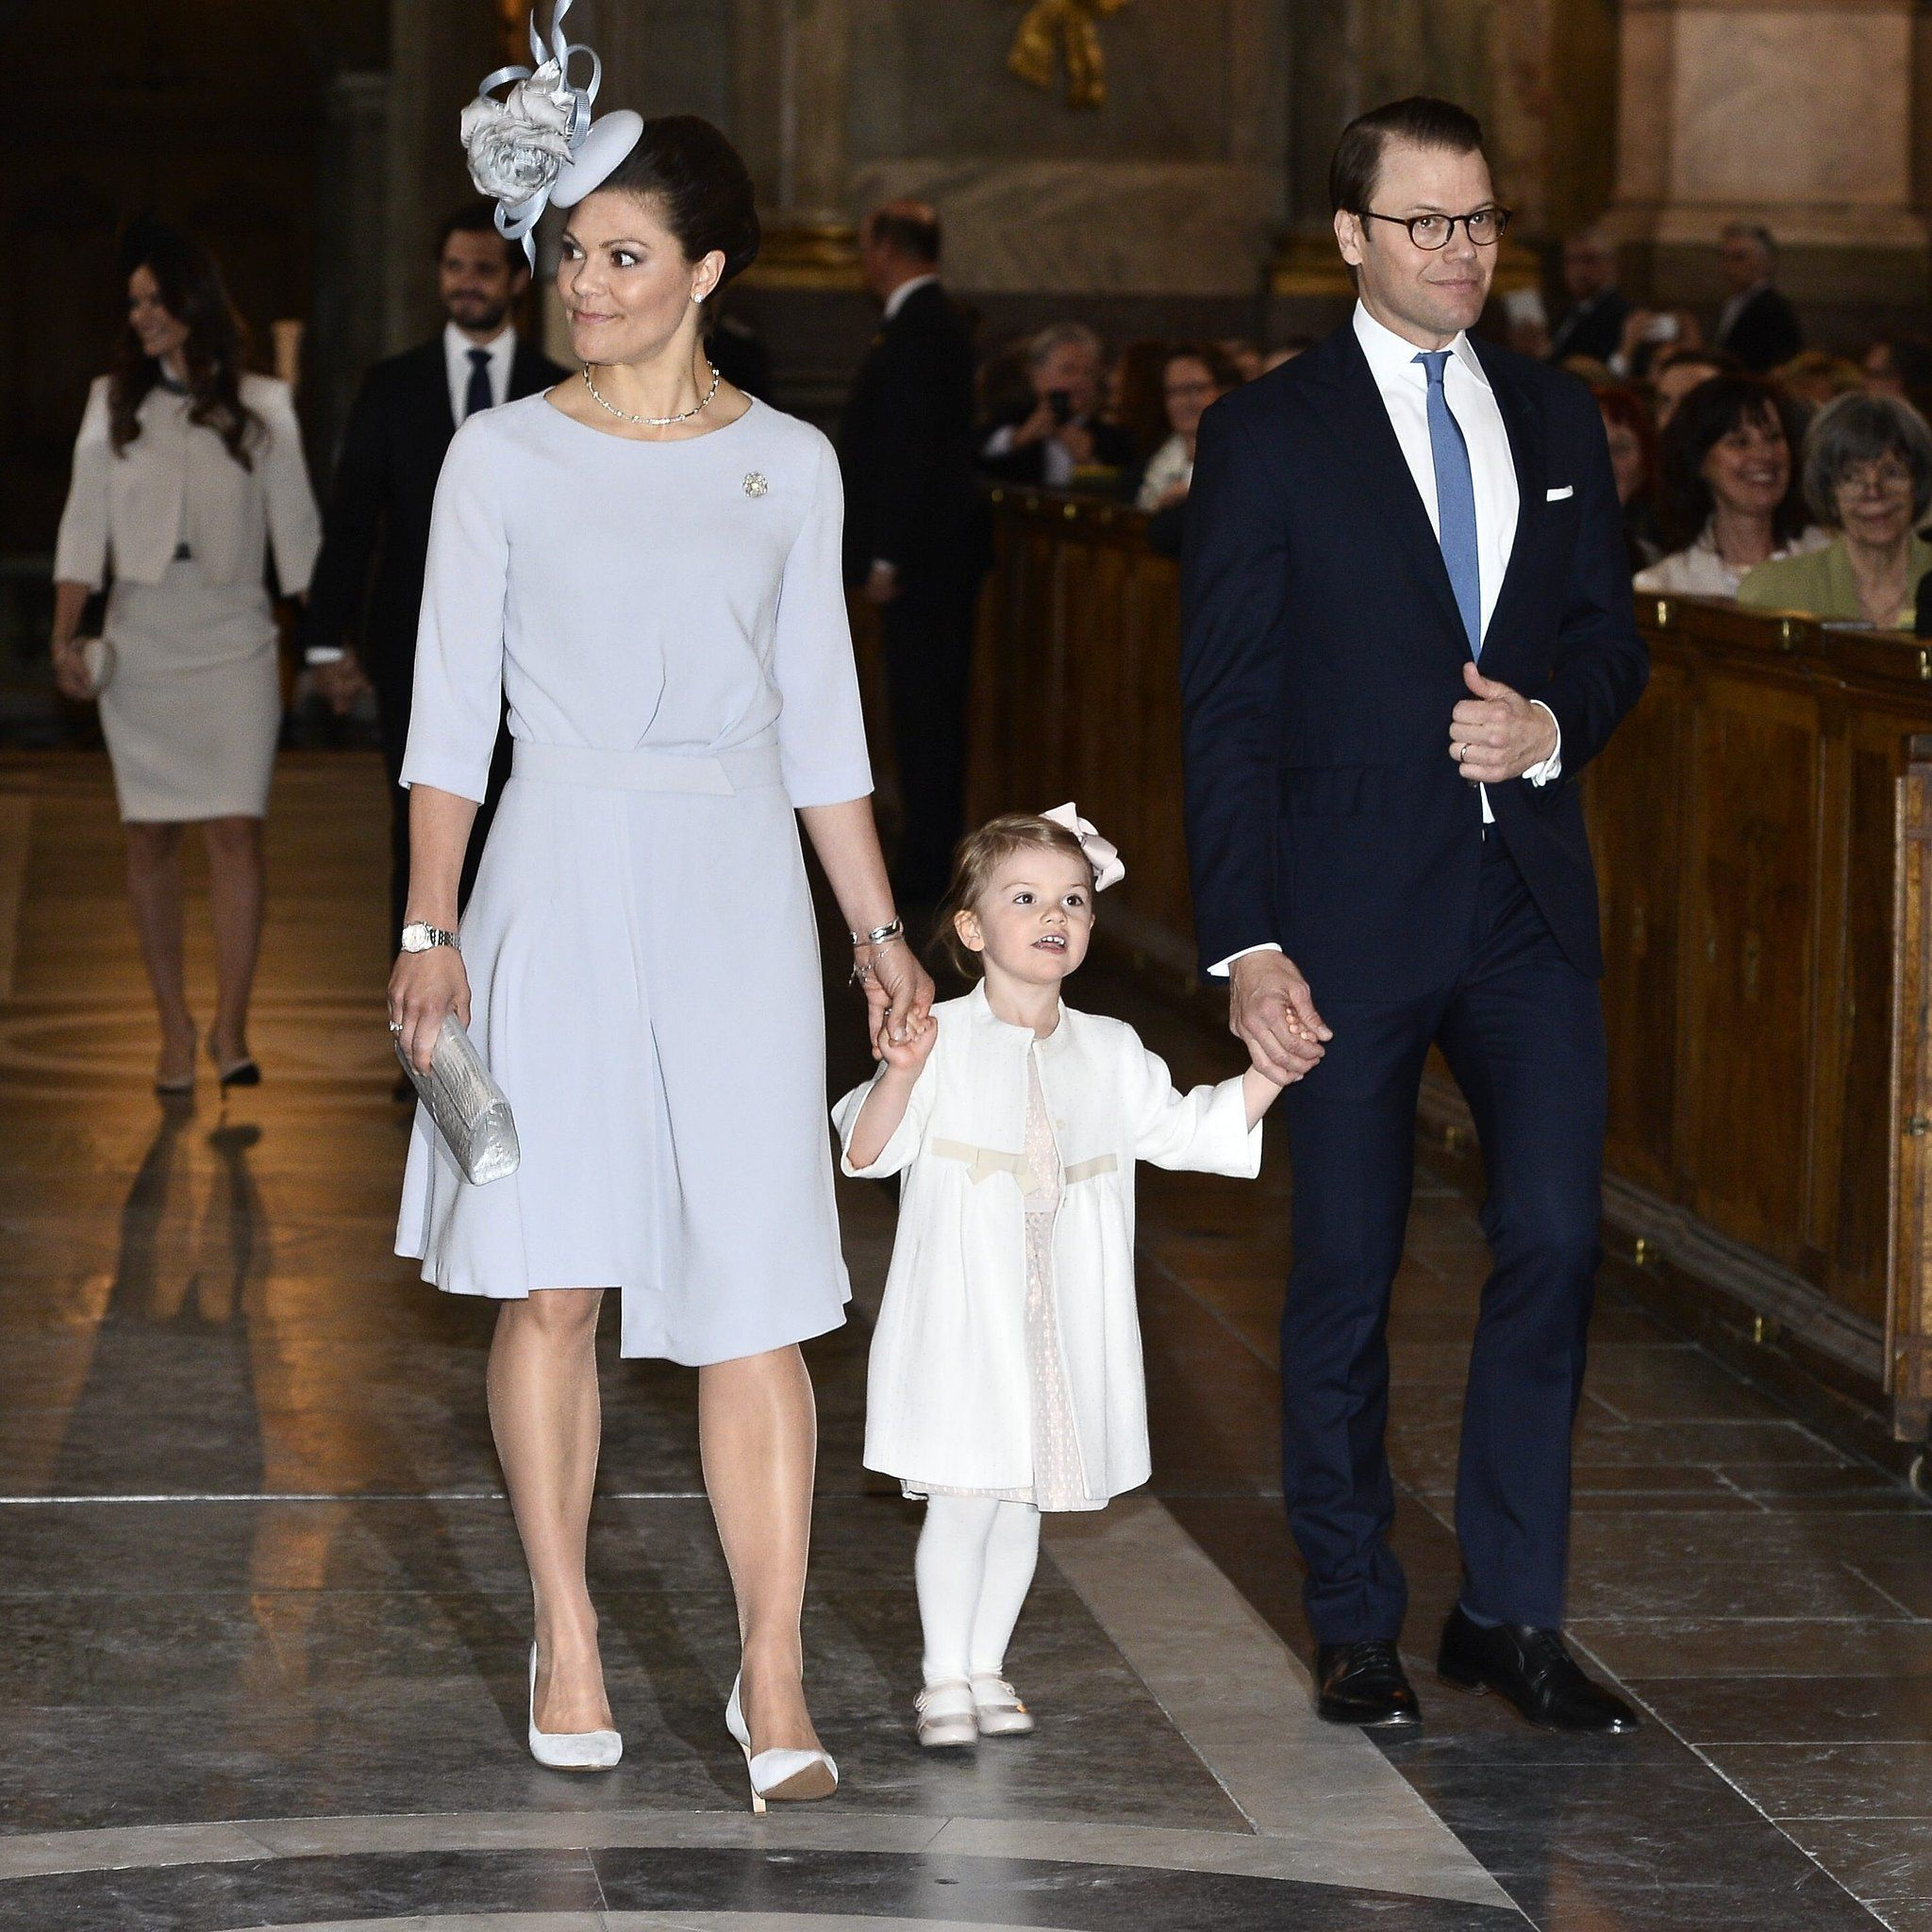 Princess Estelle of Sweden Is About to Become Your New Favorite Little Royal